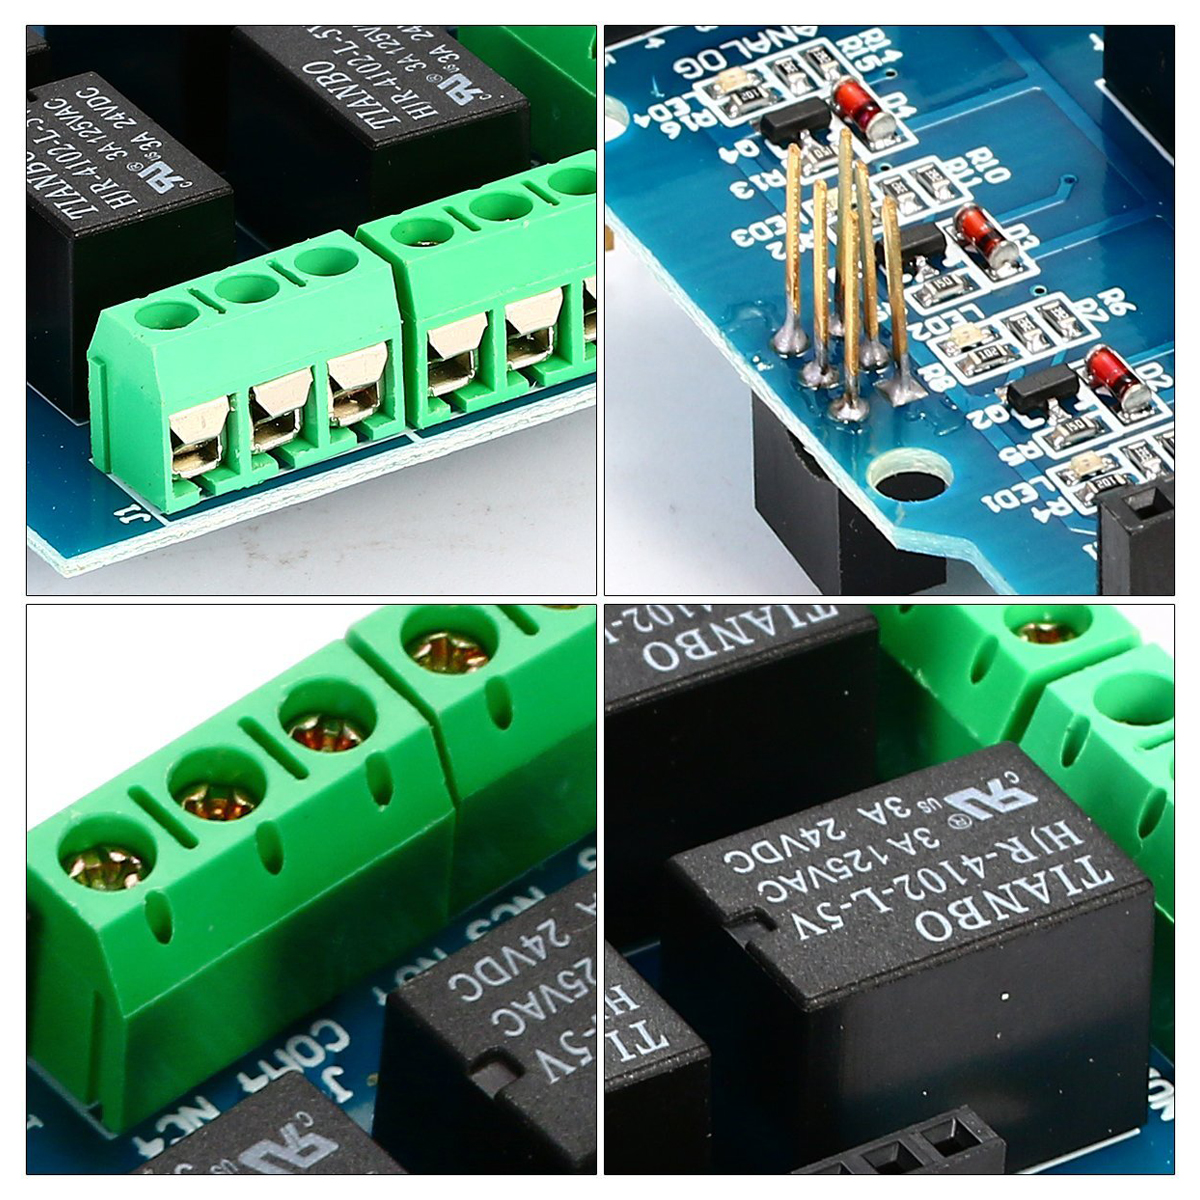 Four Channel Relay Shield 5v 4 4ch Module Screen For Simple Arduino Use Projects Standard And Shape Interfaces Continue To Stack Other Expansion Boards 3 M3 Screw Positioning Holes Easy Installation